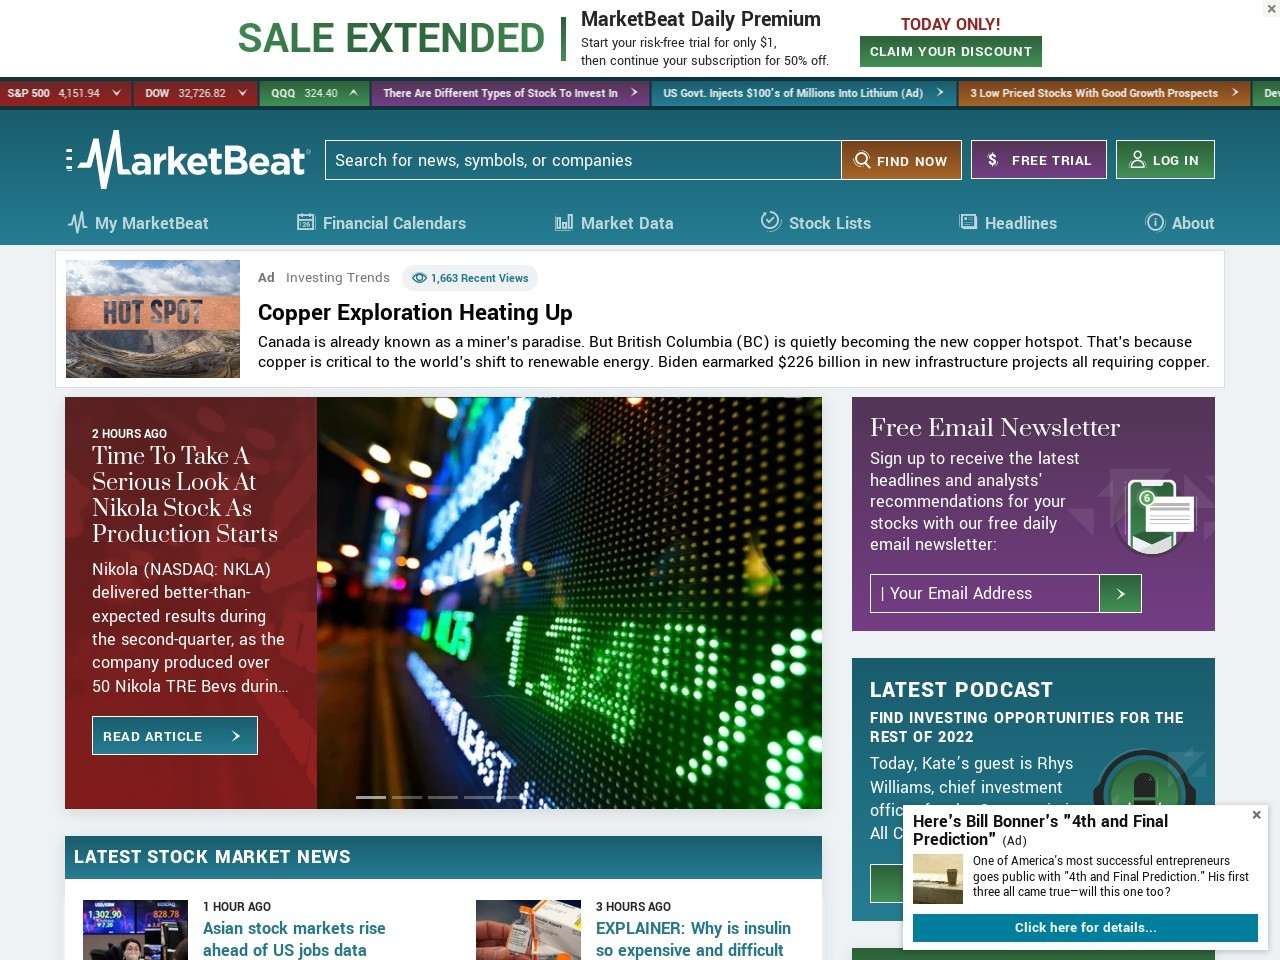 ReachLocal Downgraded by TheStreet to Sell (RLOC)